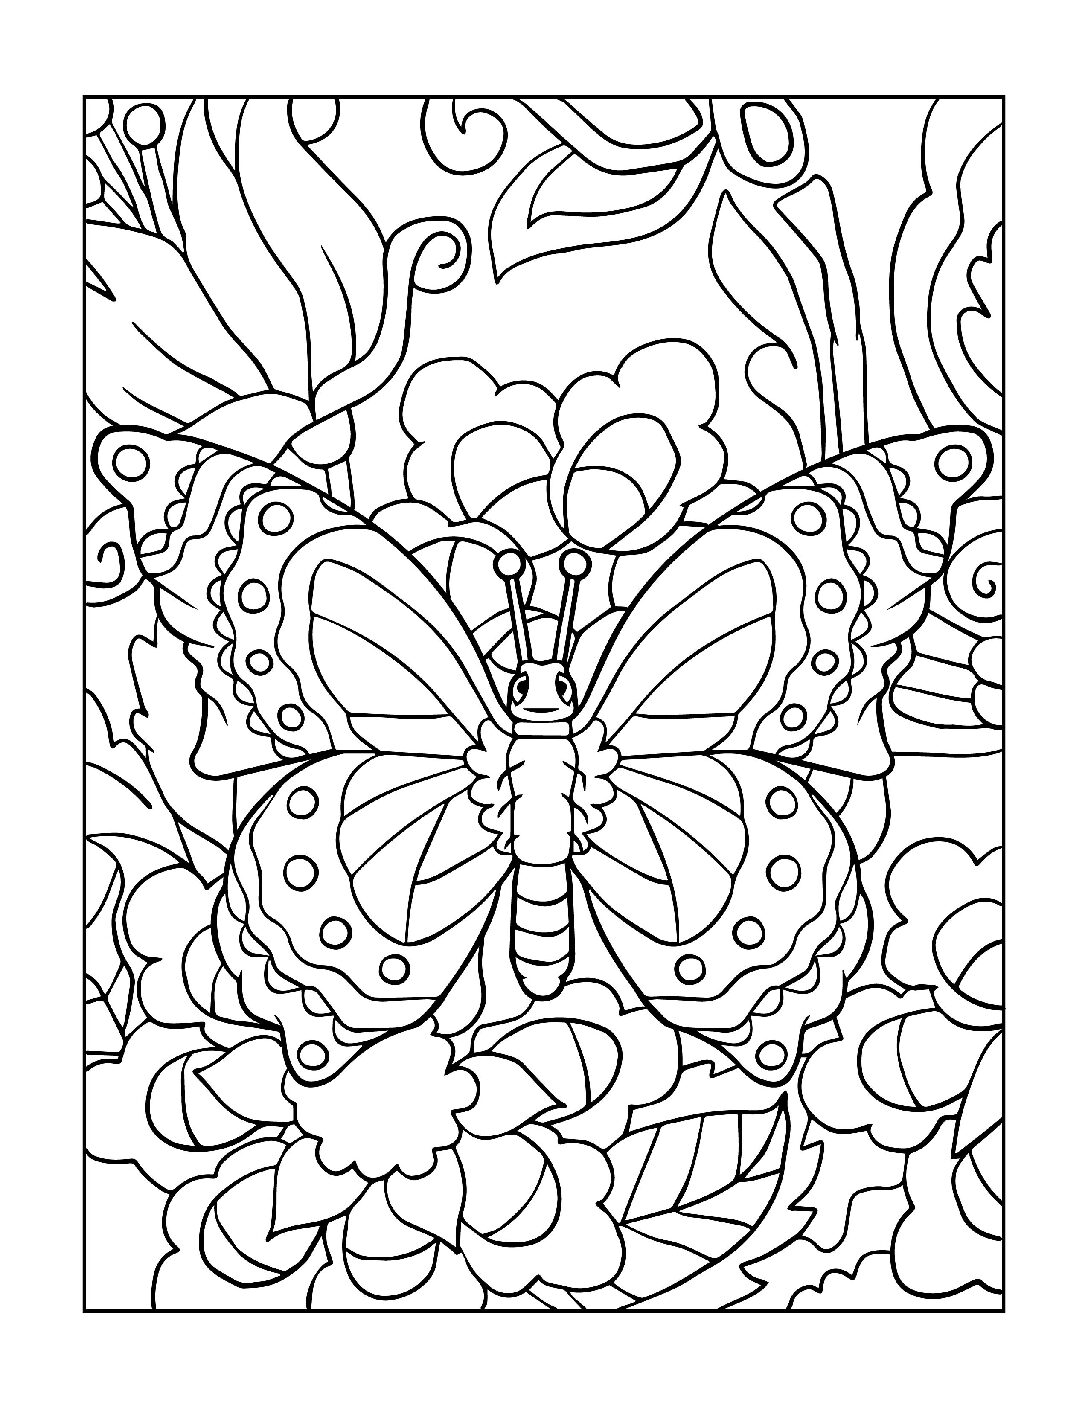 Coloring-Pages_Butterflies-12-01-pdf Free Printable Butterfly Colouring Pages